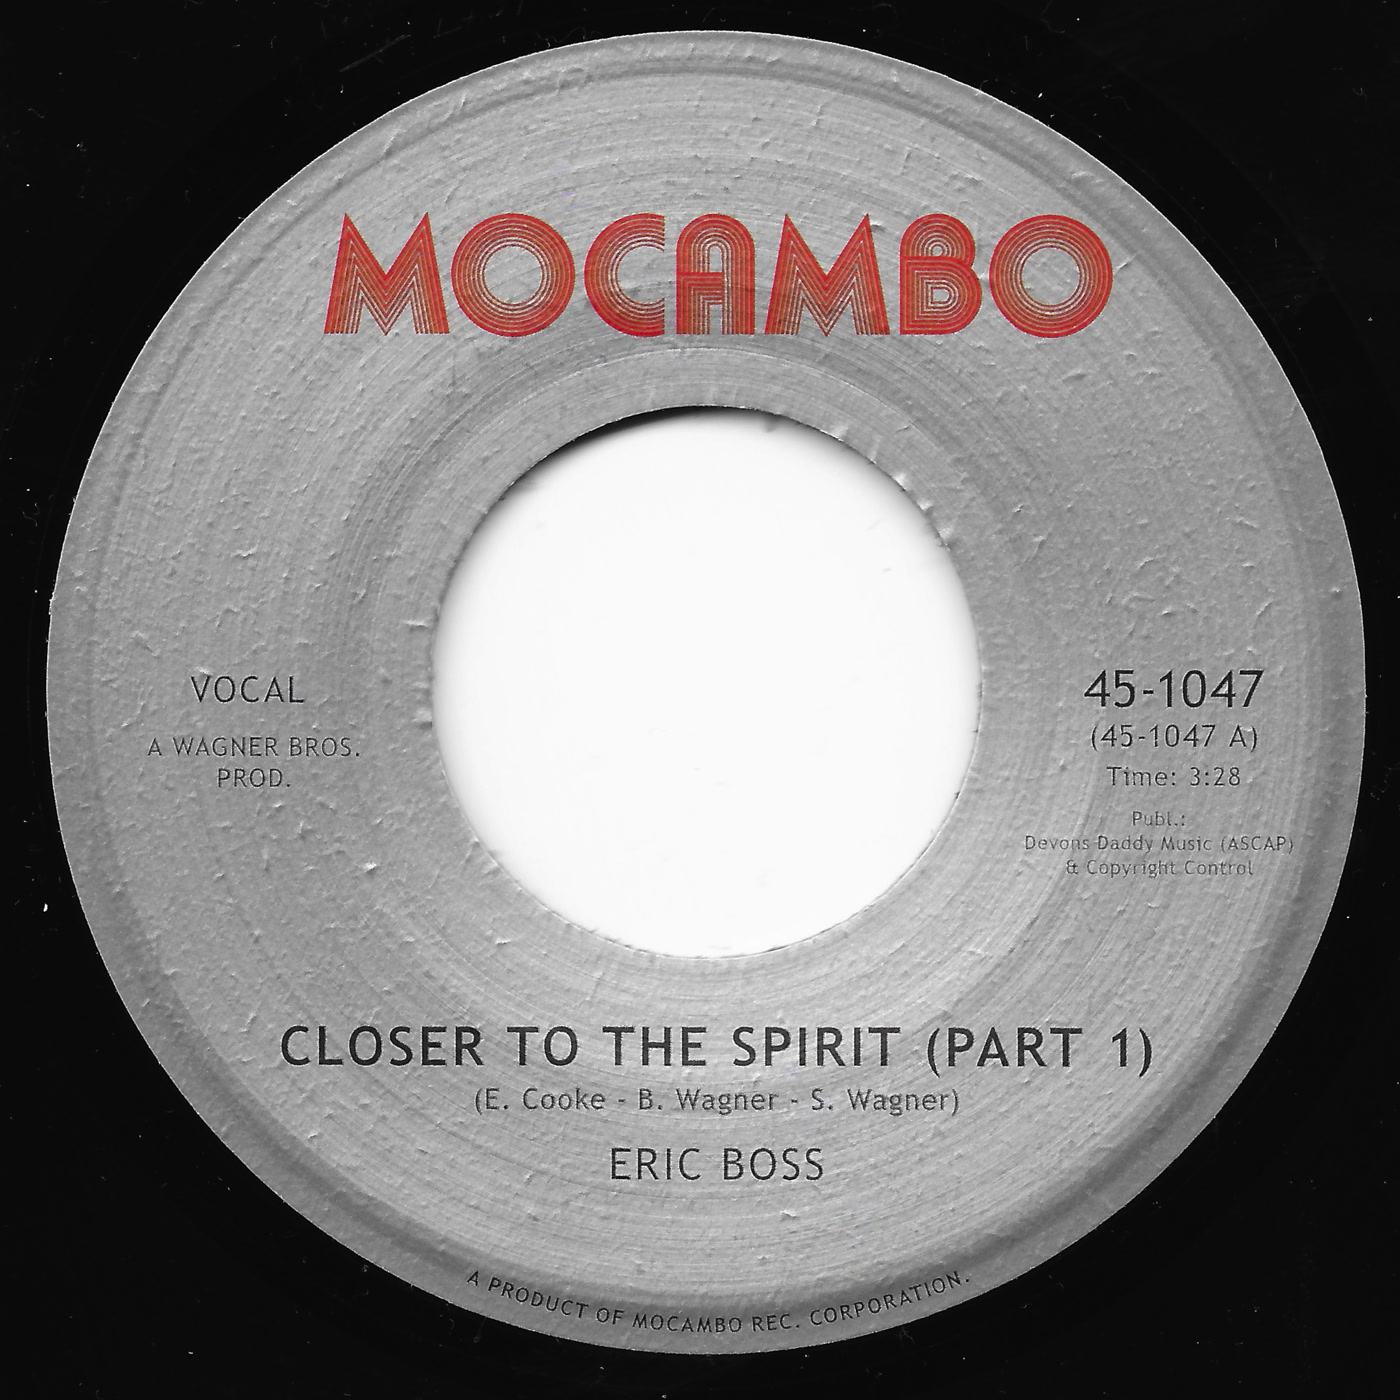 Afbeeldingsresultaat voor Eric Boss - Closer to the Spirit